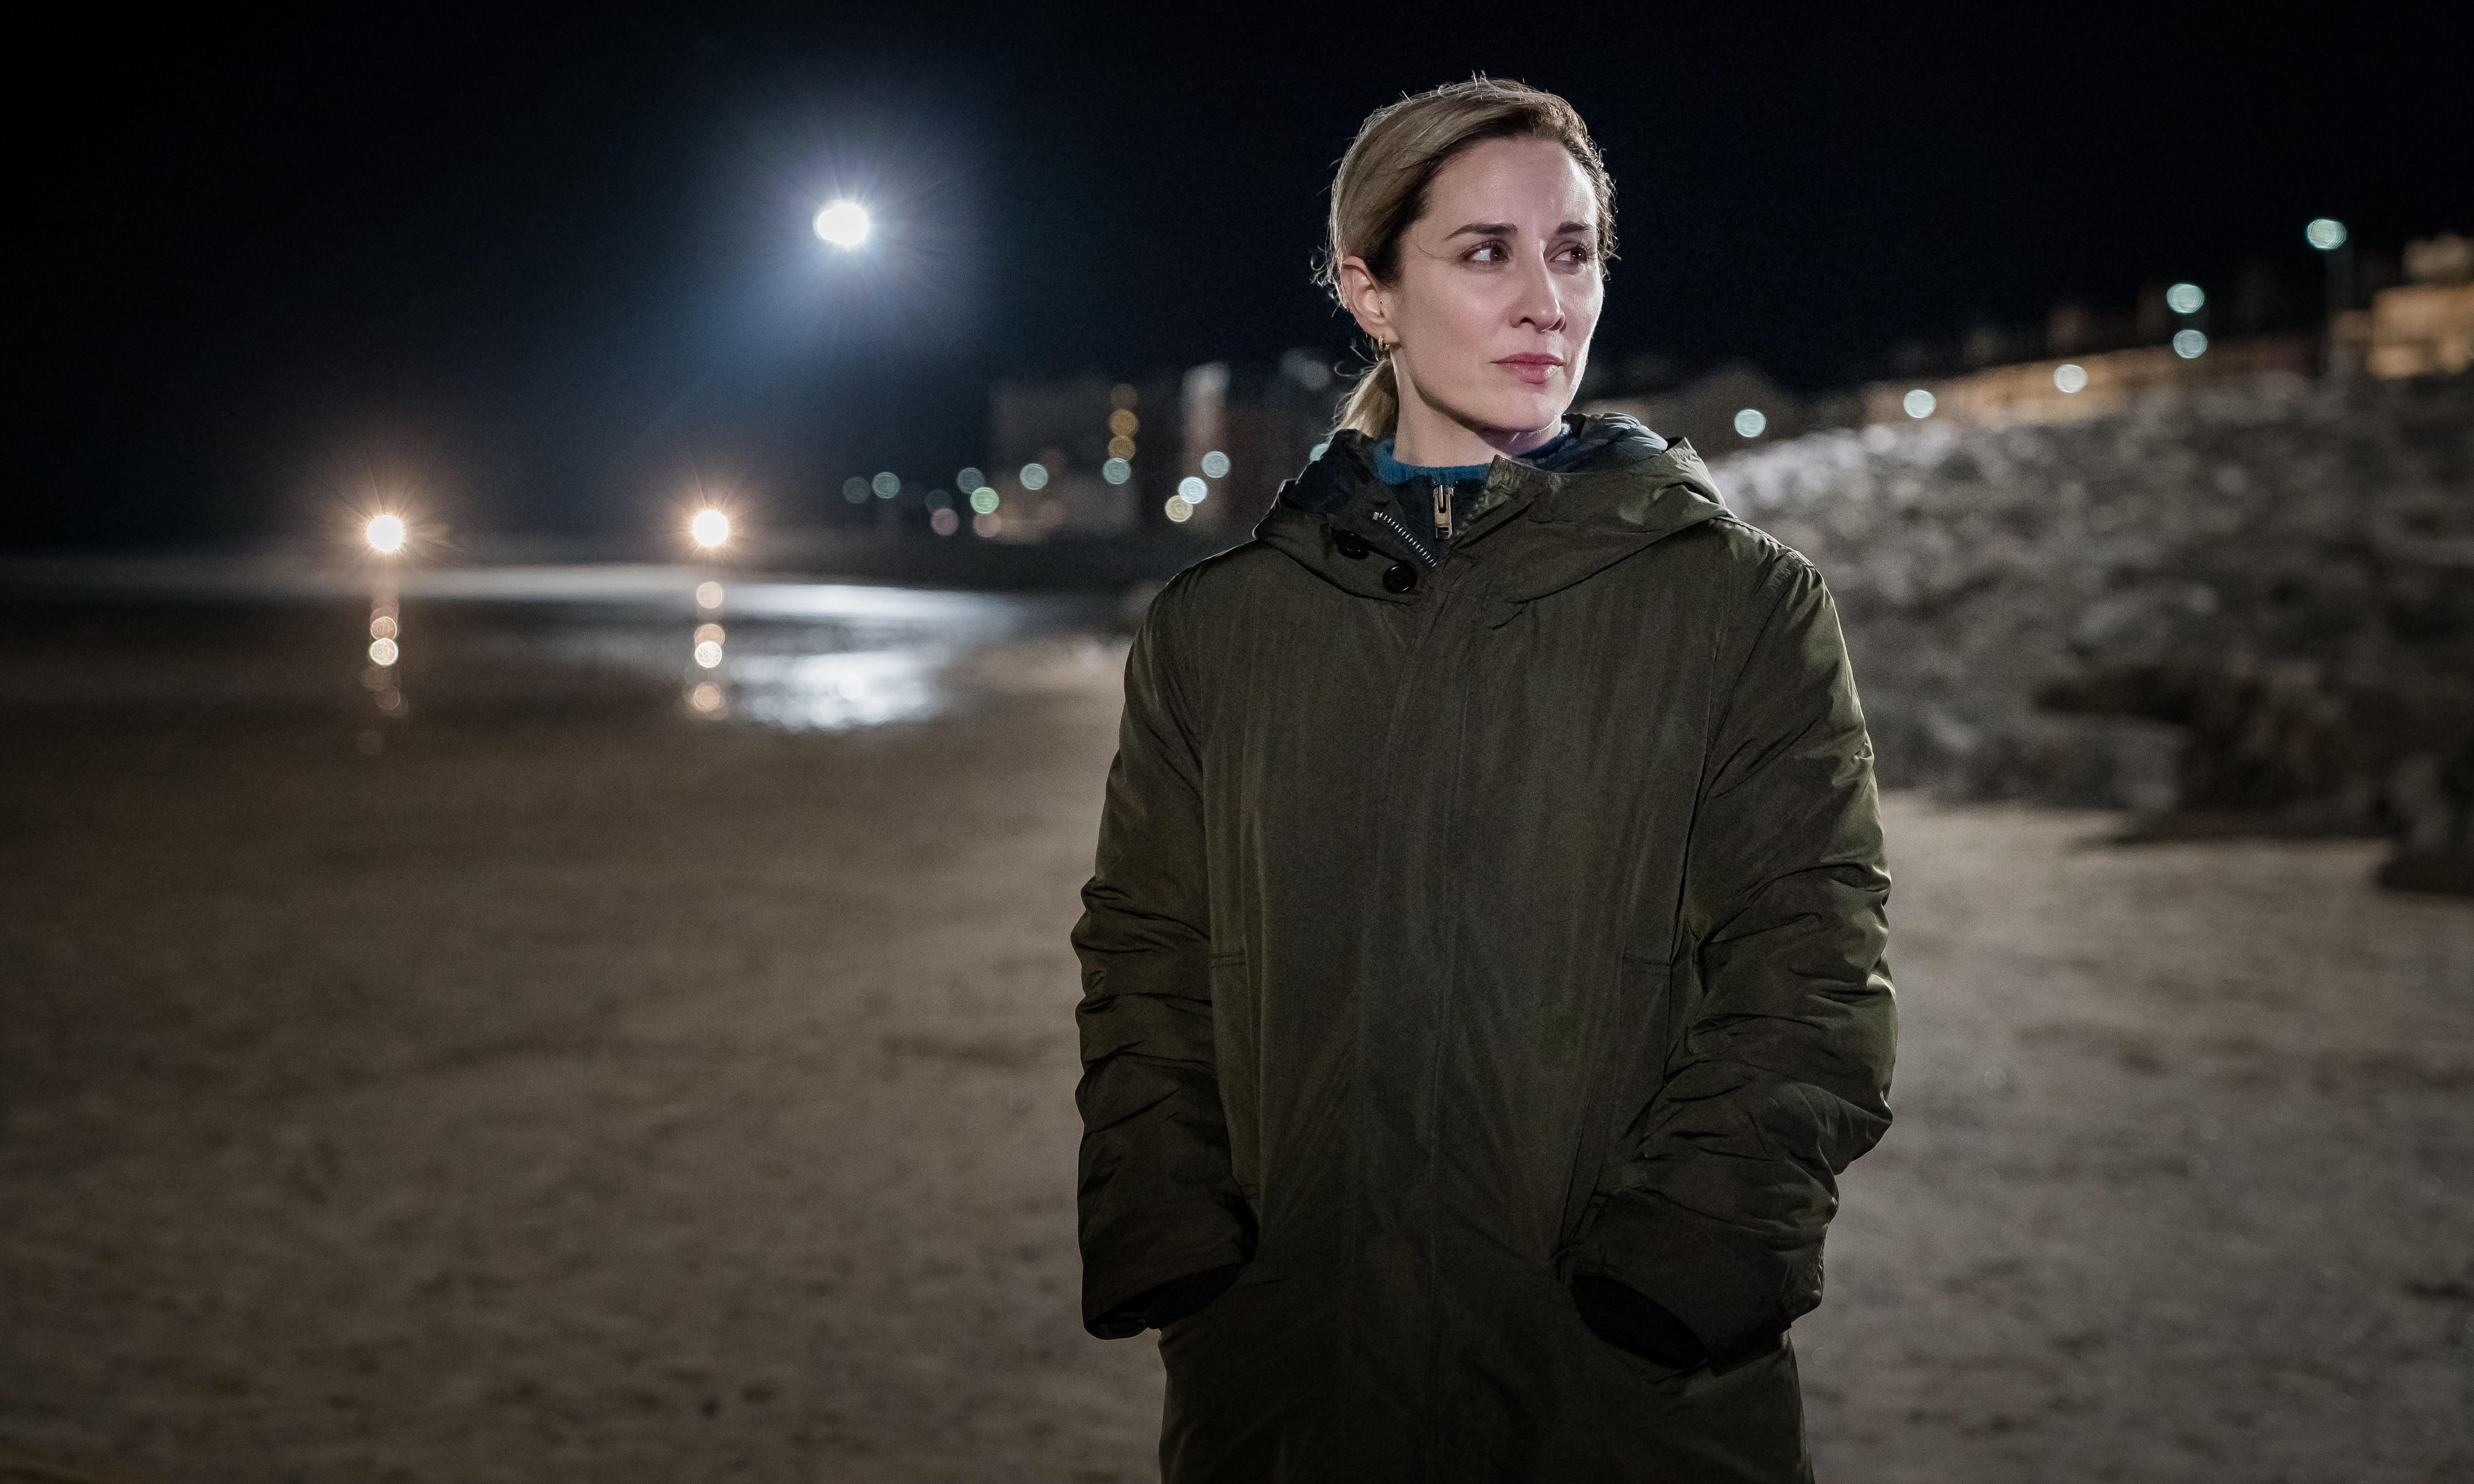 TV tonight: a police officer is in too deep in a horribly tense thriller